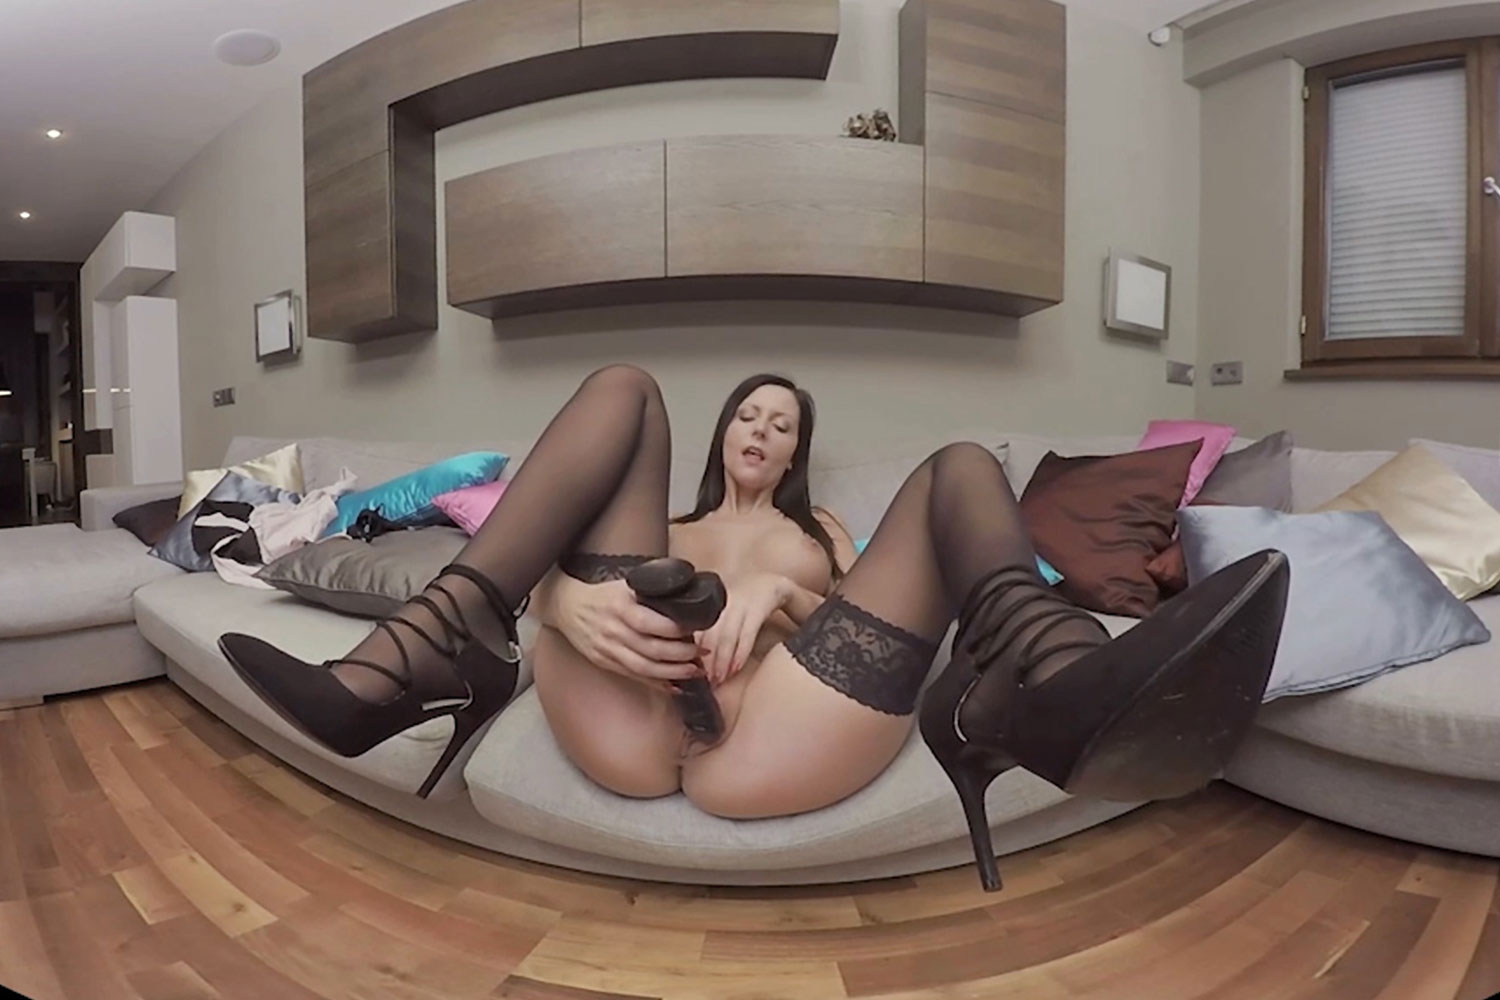 out the question. pantyhose bondage sex videos advise you. What nice